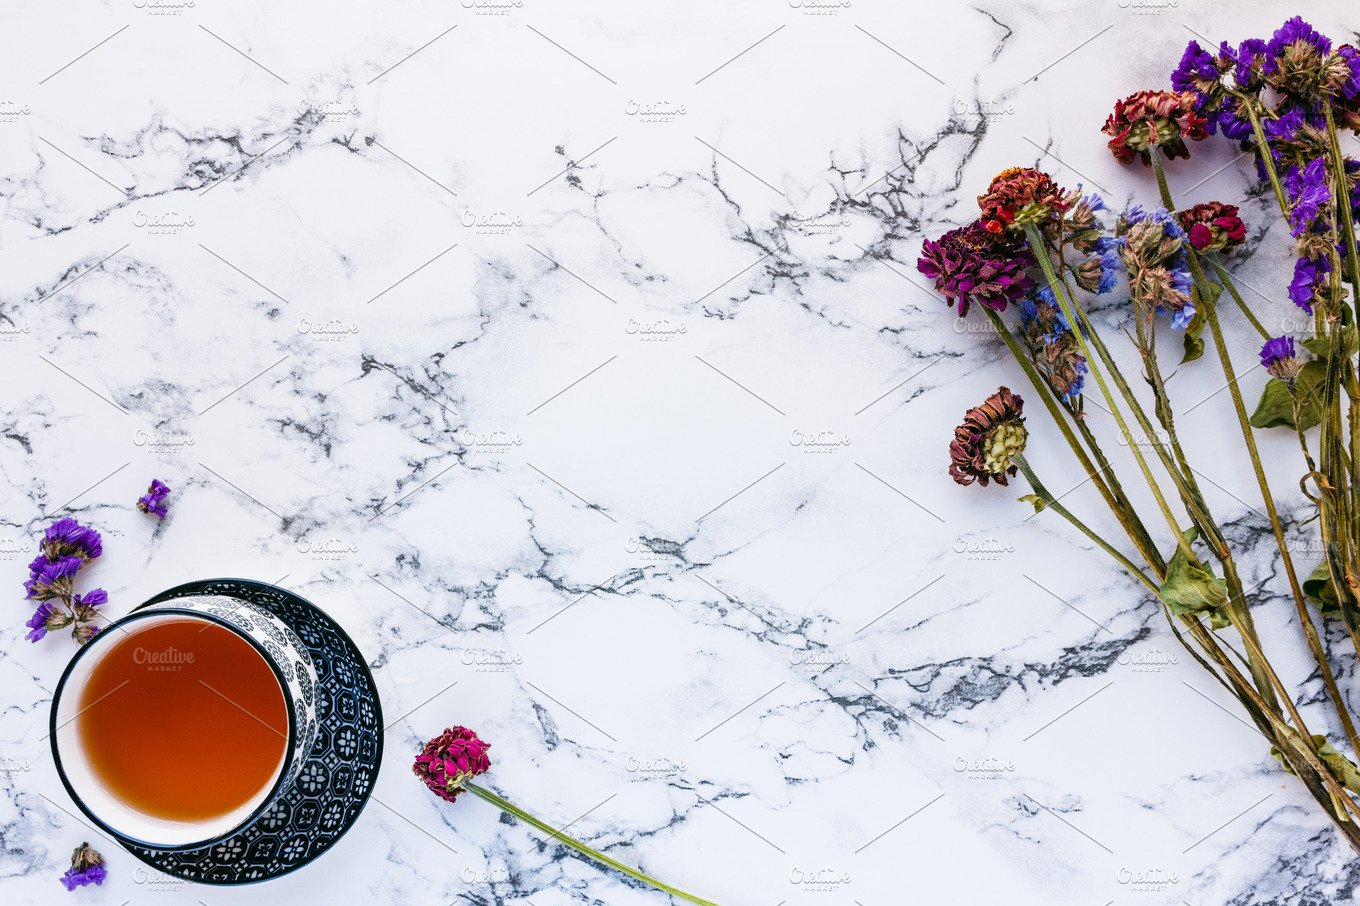 Tea And Flowers On White Marble Food Images Creative Market